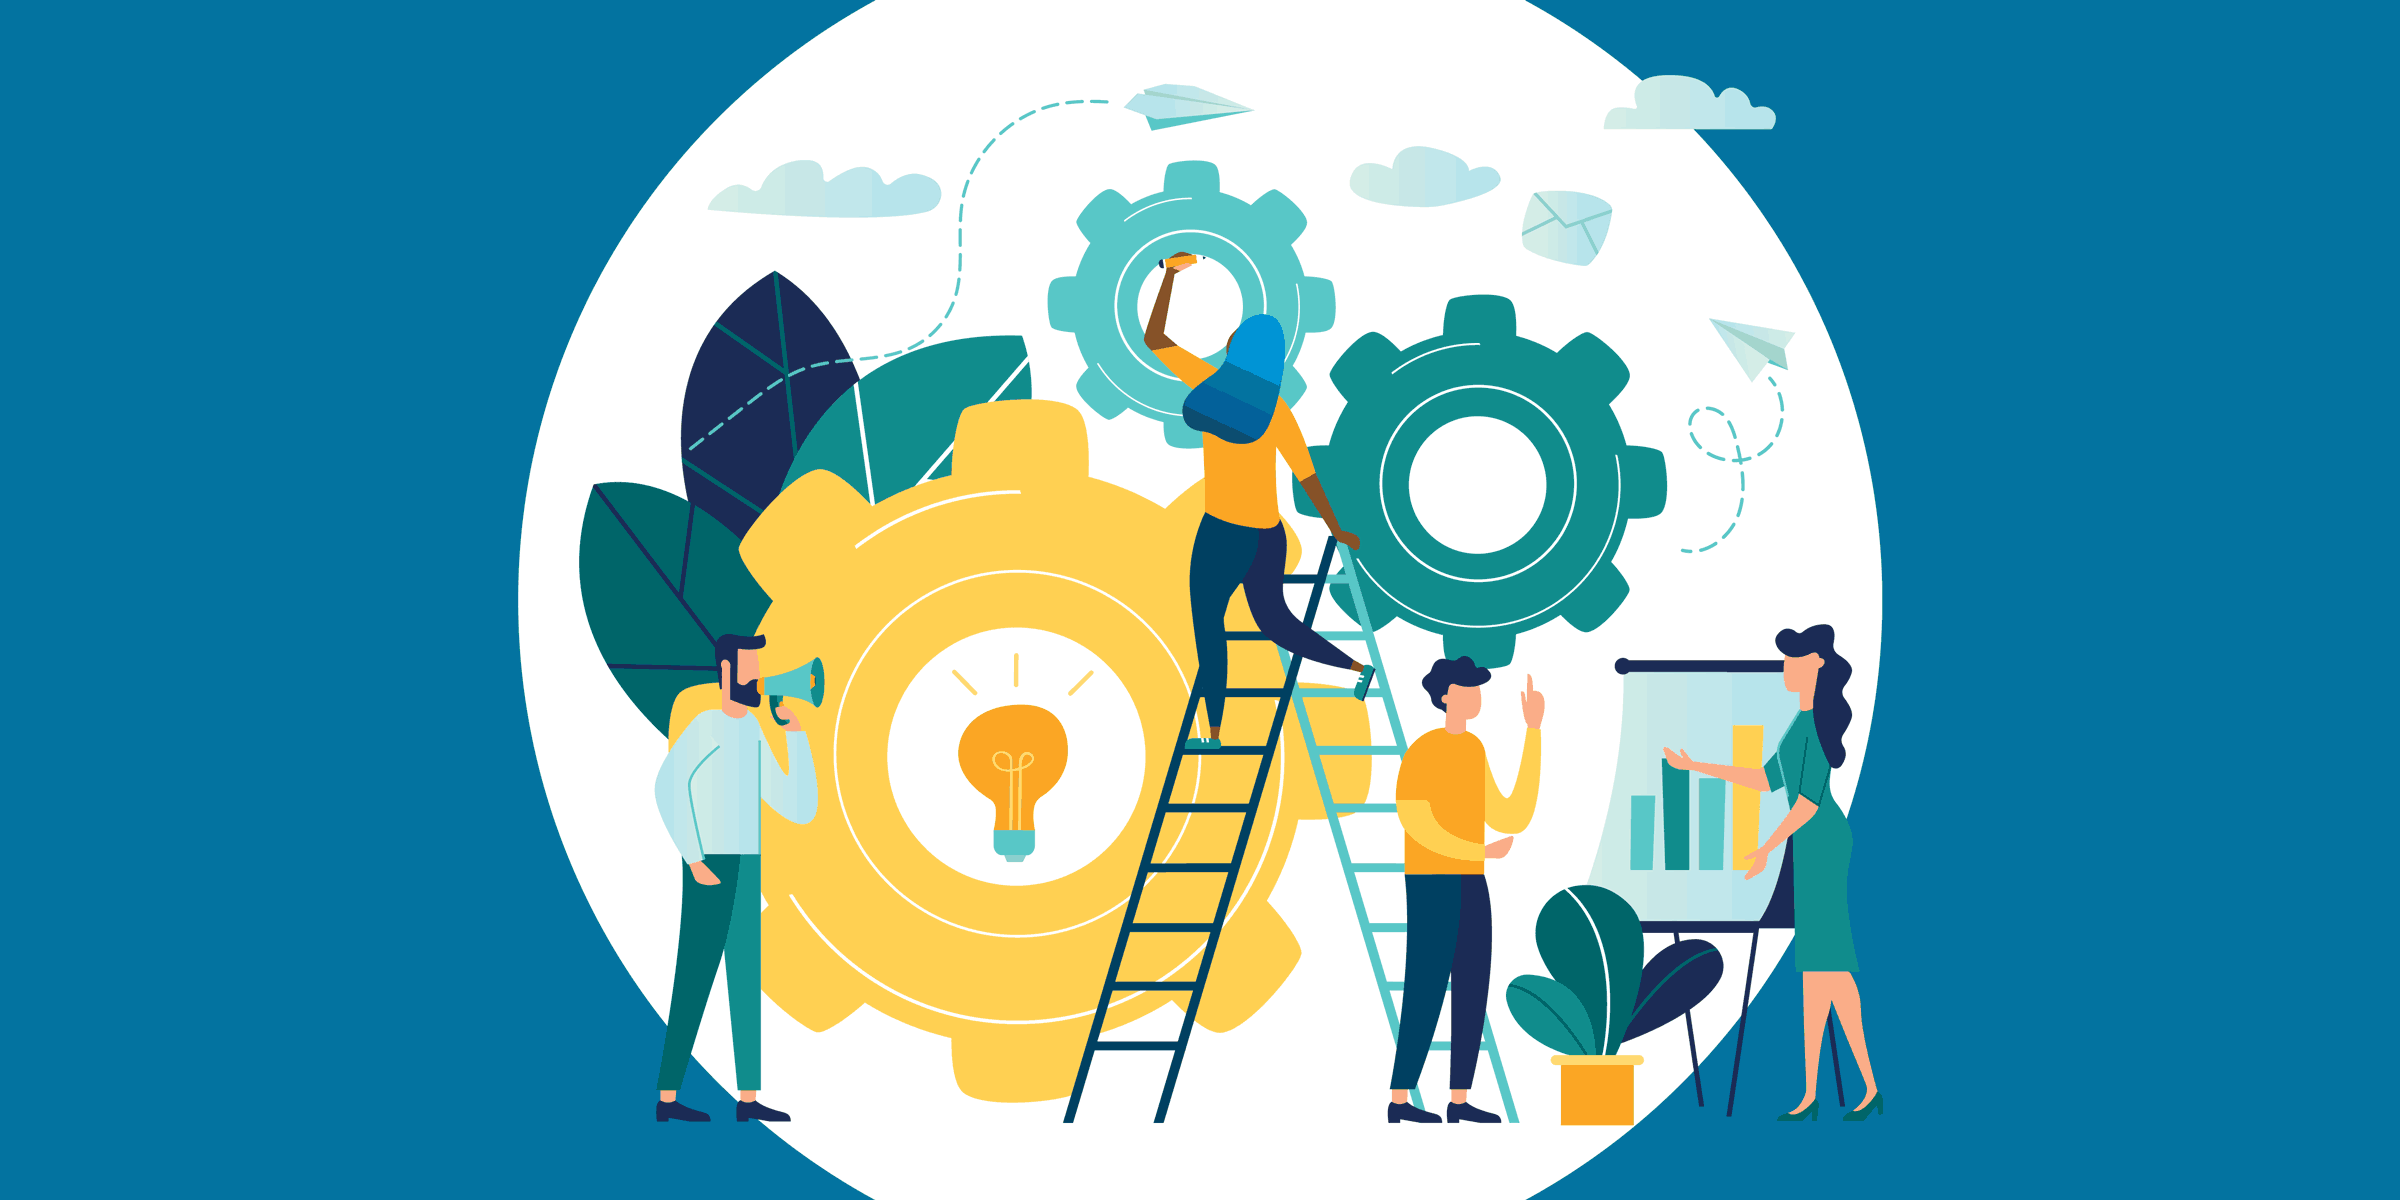 illustration of nonprofit staff members working on increasing social media engagement, symbolized through gears, a lightbulb, a megaphone, a ladder, and an easel with a bar chart on it